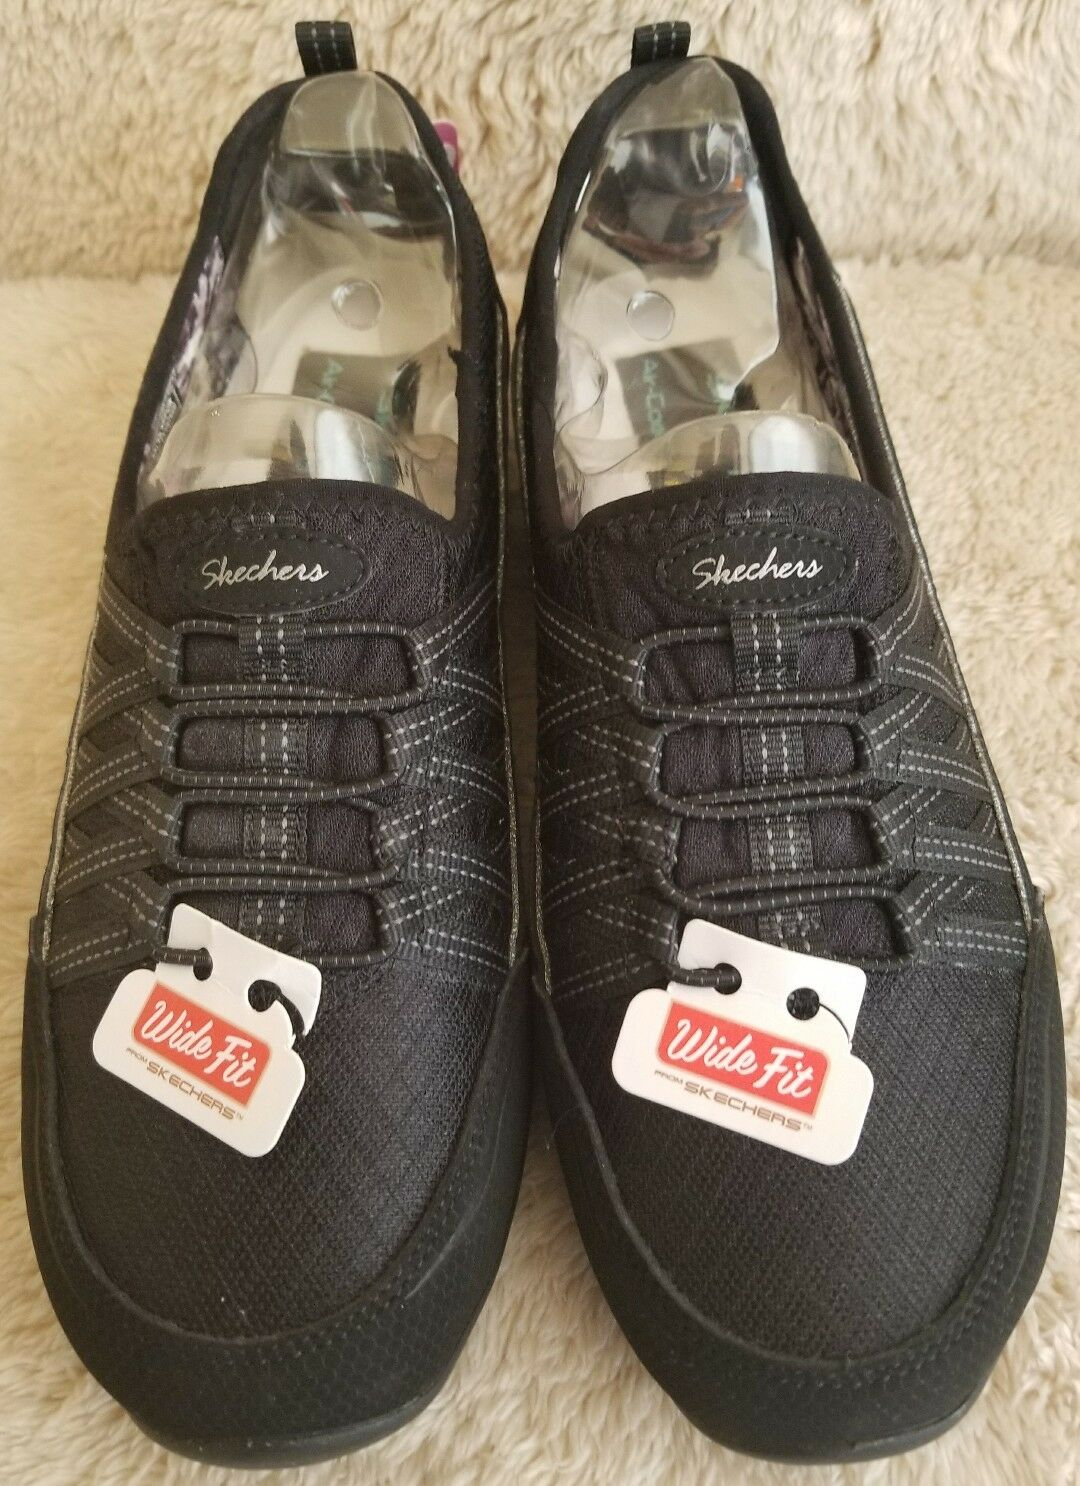 Skechers nero Wide Fit Air Cooled Cooled Cooled Memory Foam Dimensione 7 aa949e